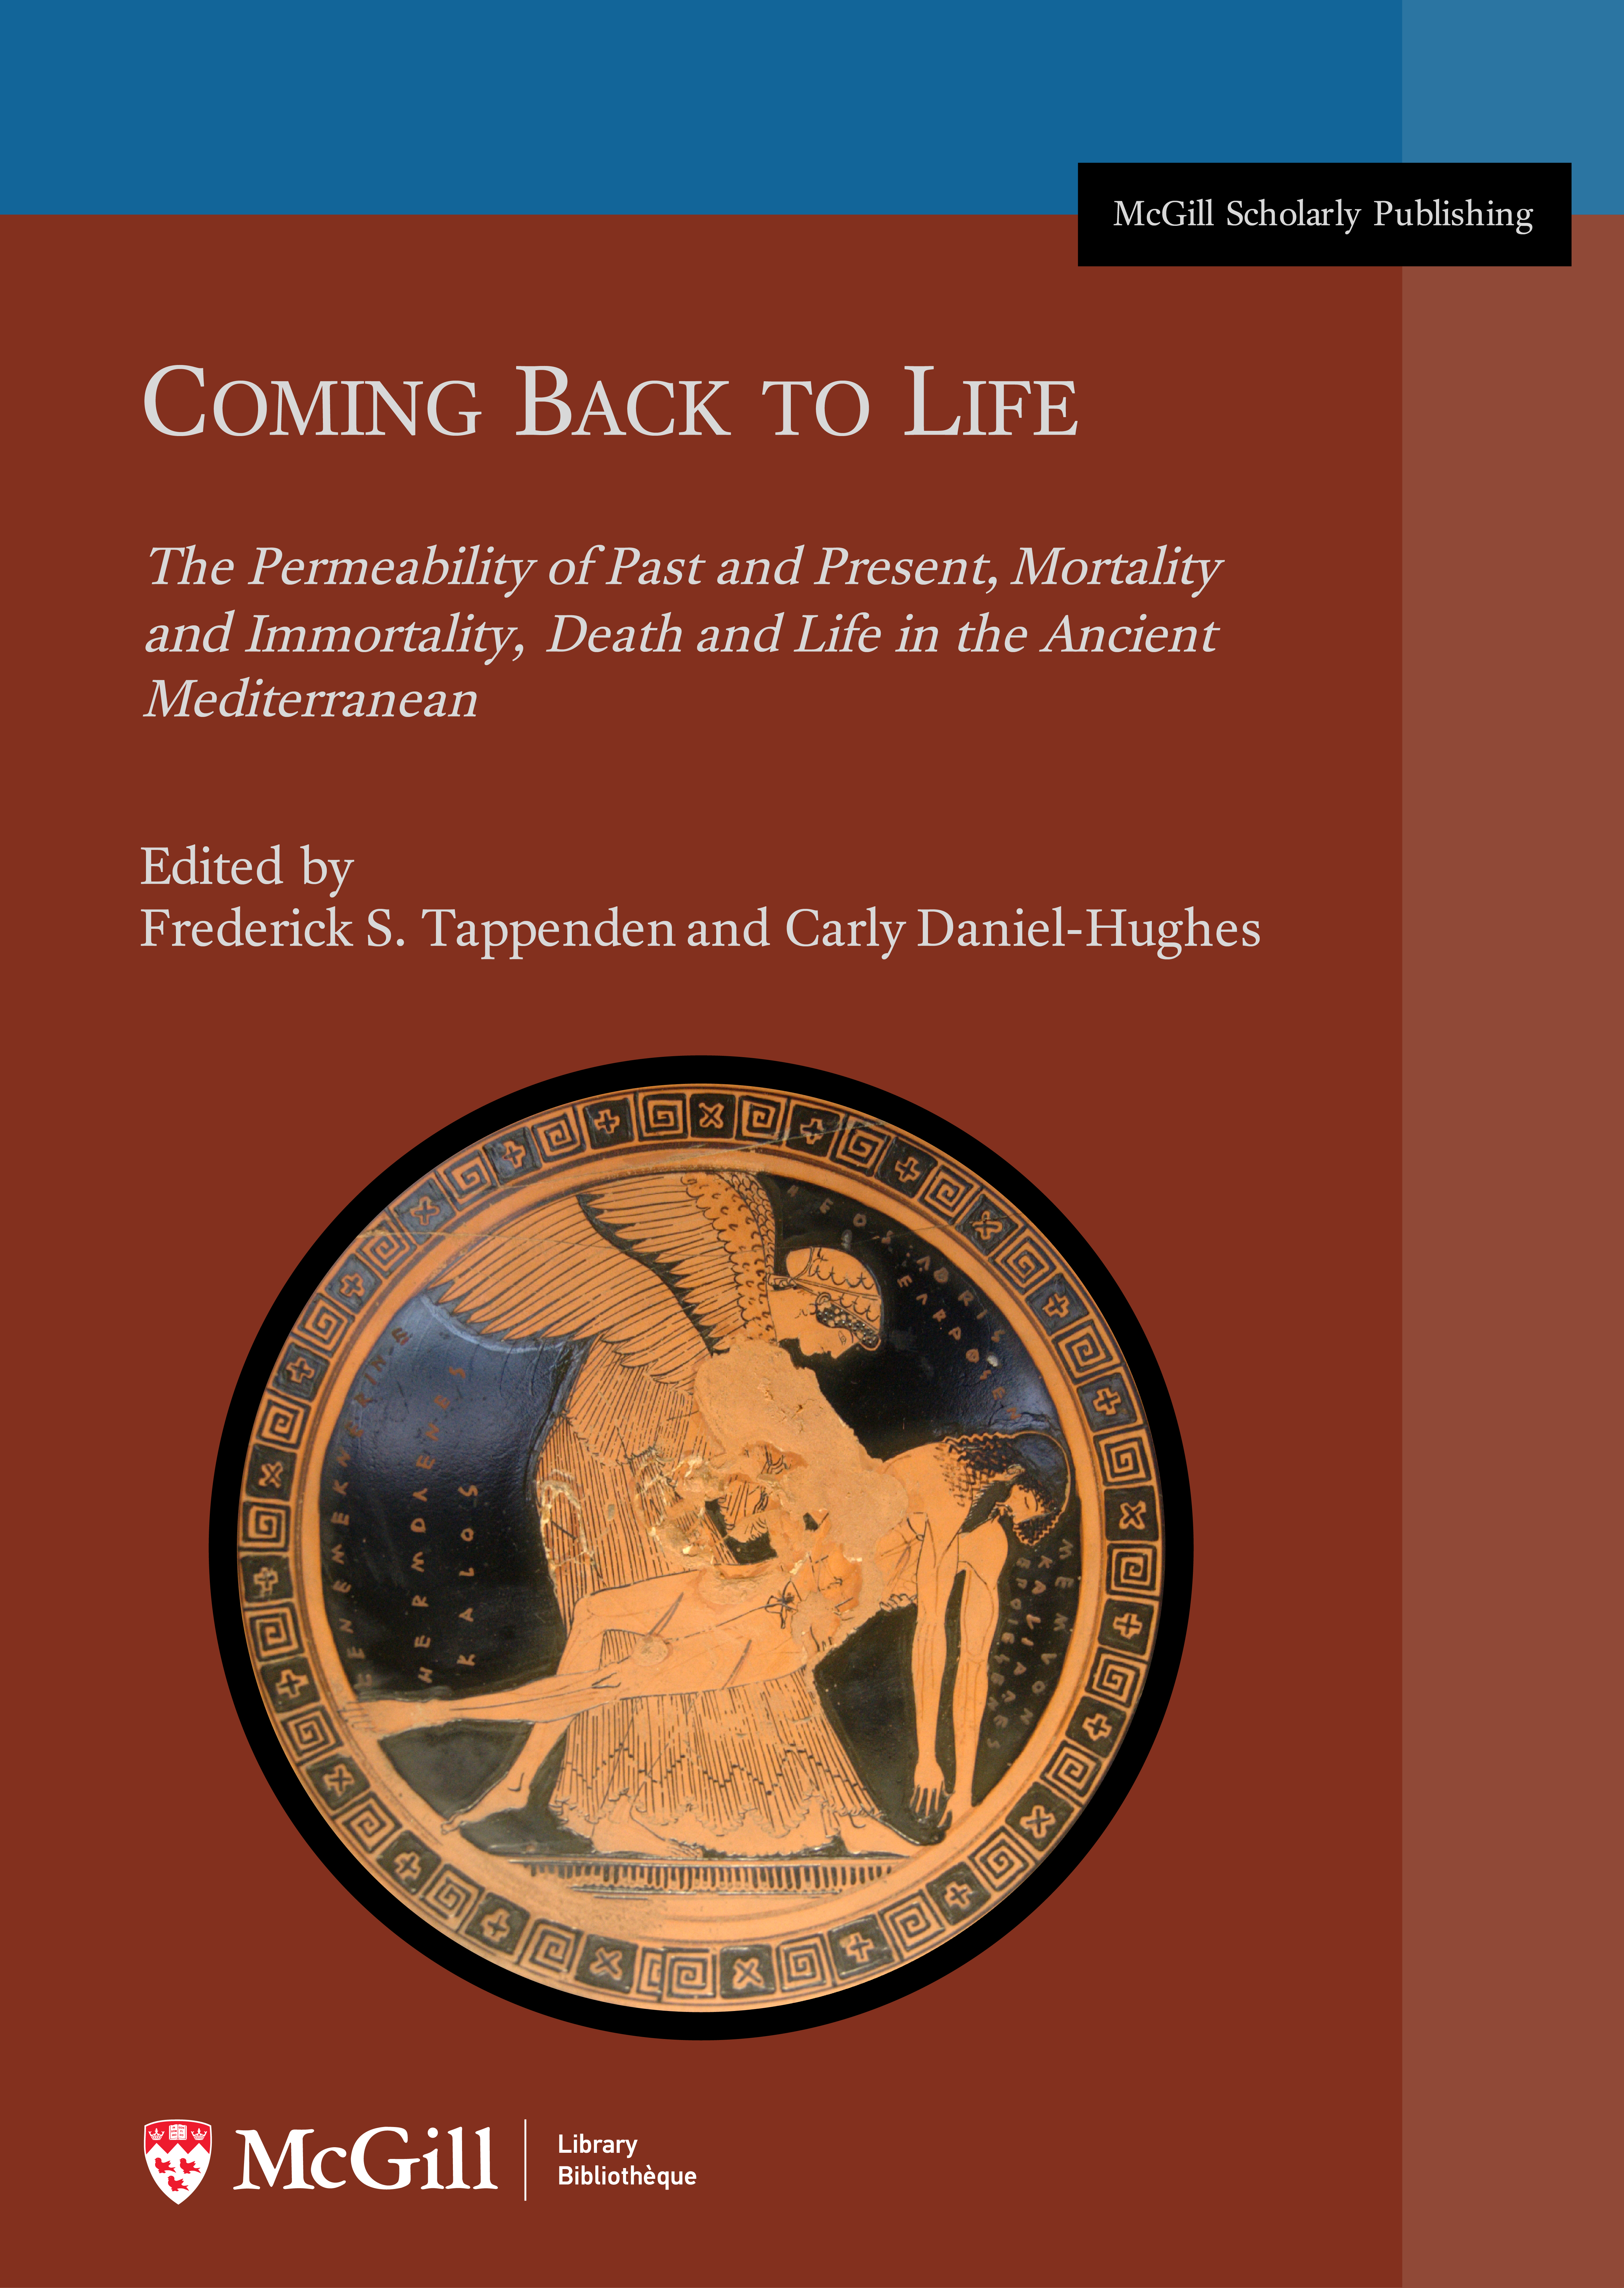 http://comingbacktolife.mcgill.ca/issue/view/2017/showToc